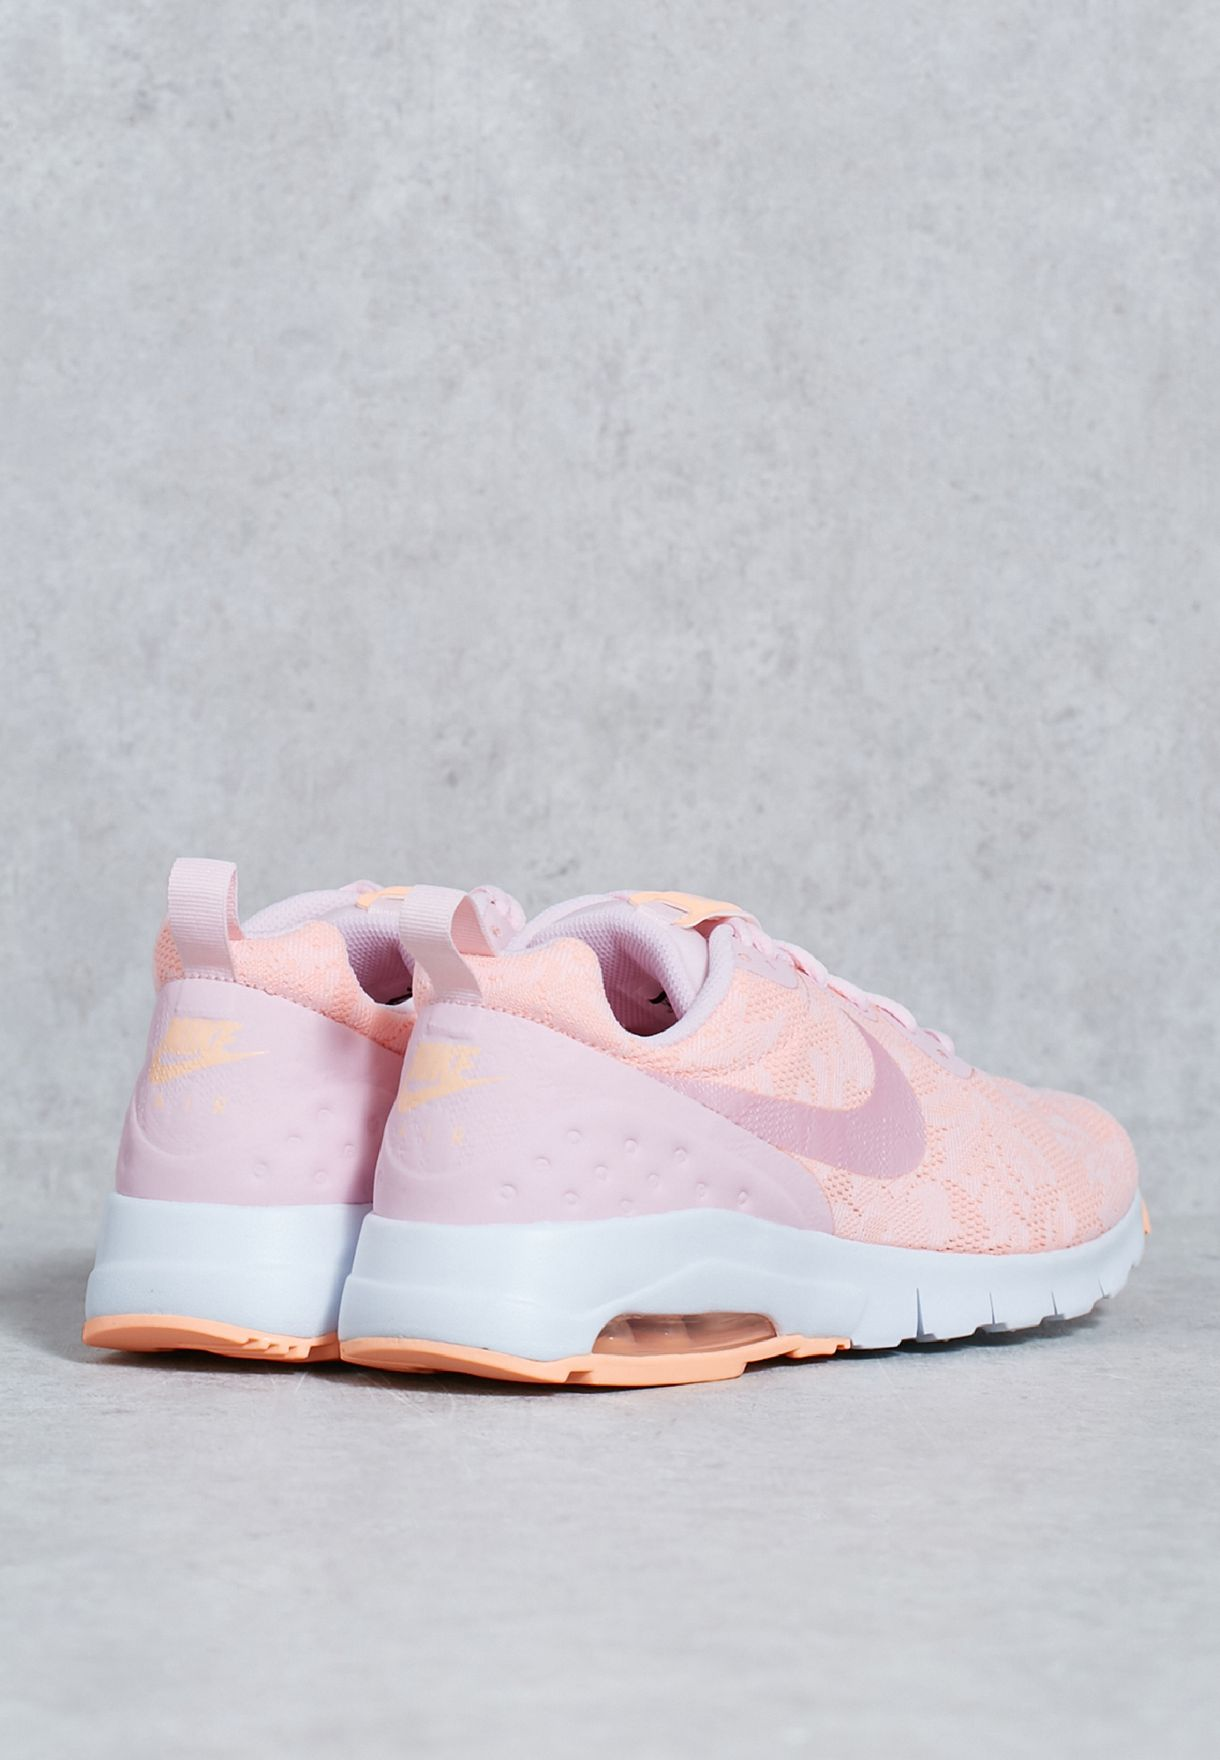 8bbae084ca Shop Nike pink Air Max Motion Low ENG 902853-600 for Women in ...